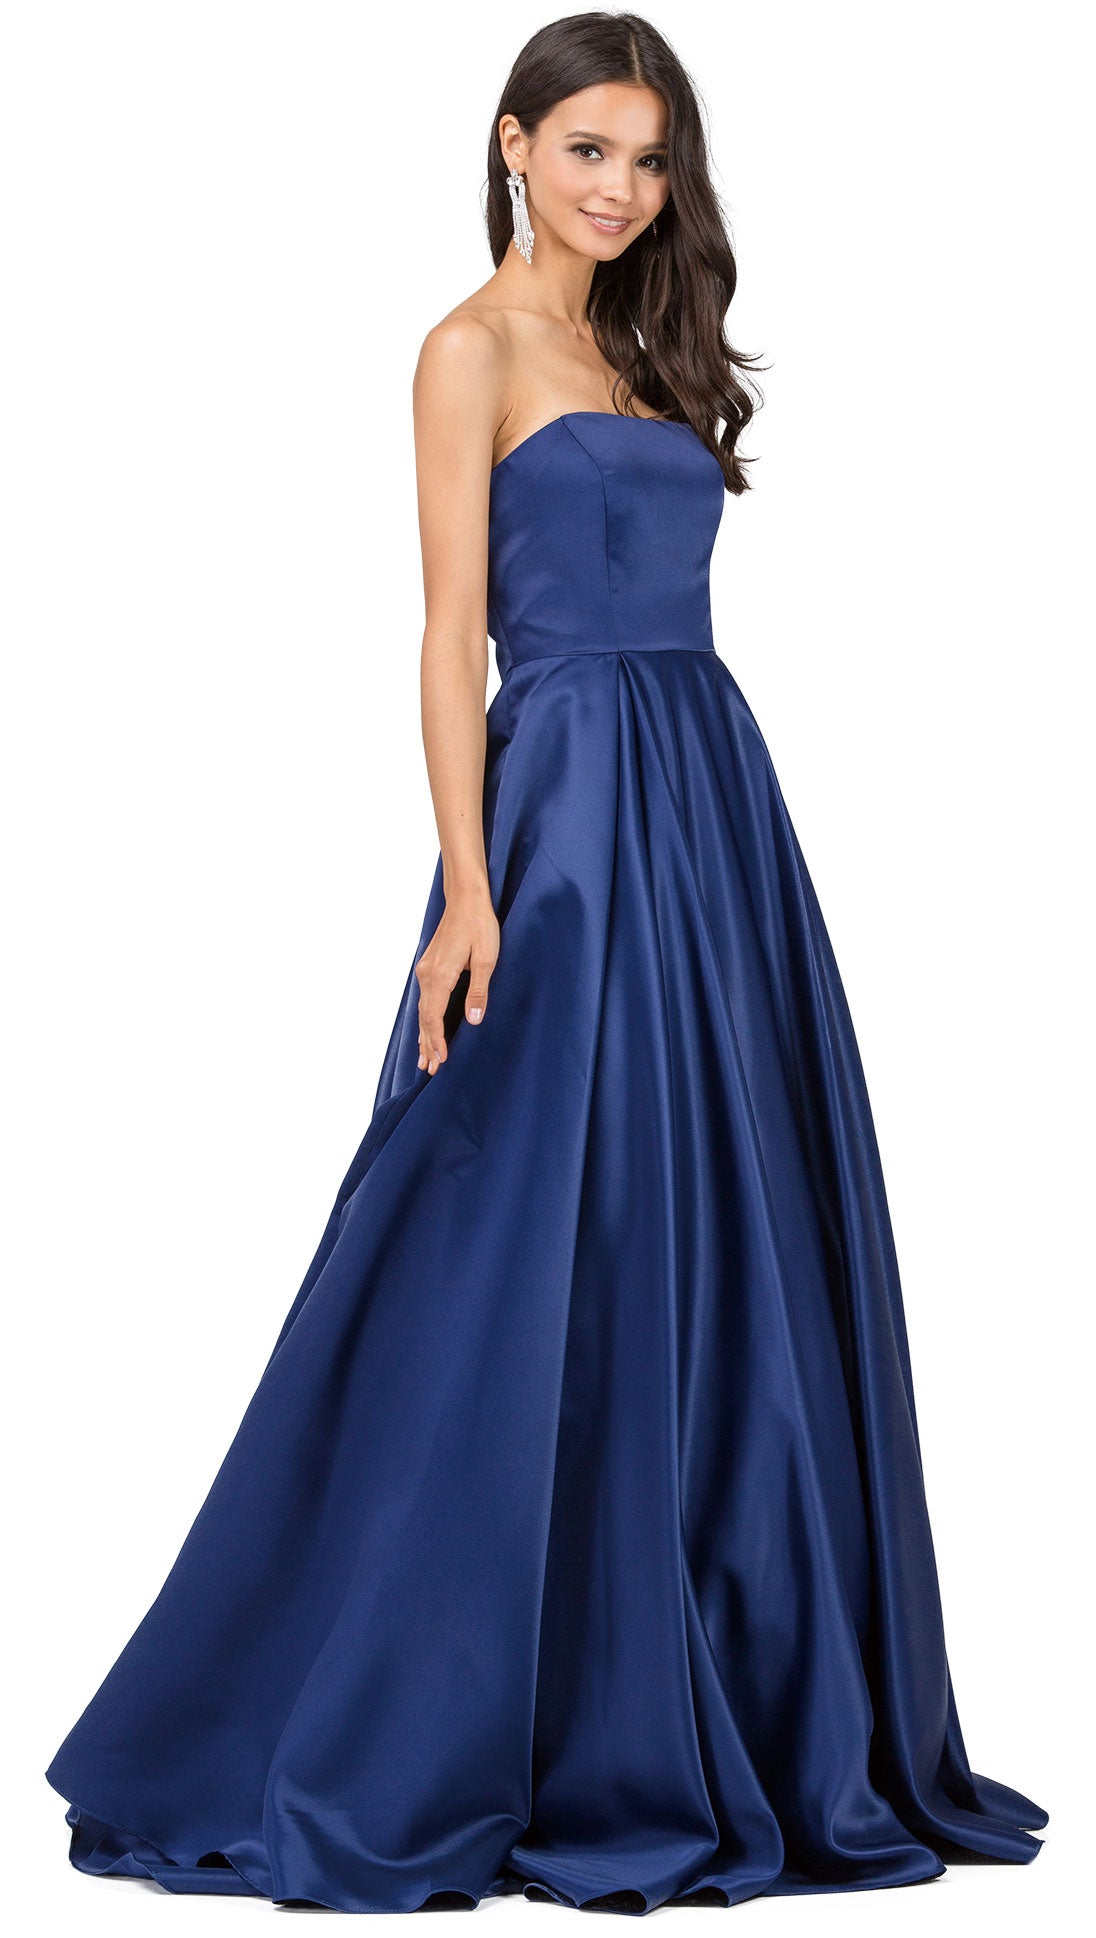 Image of Strapless Puffy Skirt Long Prom Dress With Lace-up Corset in Navy